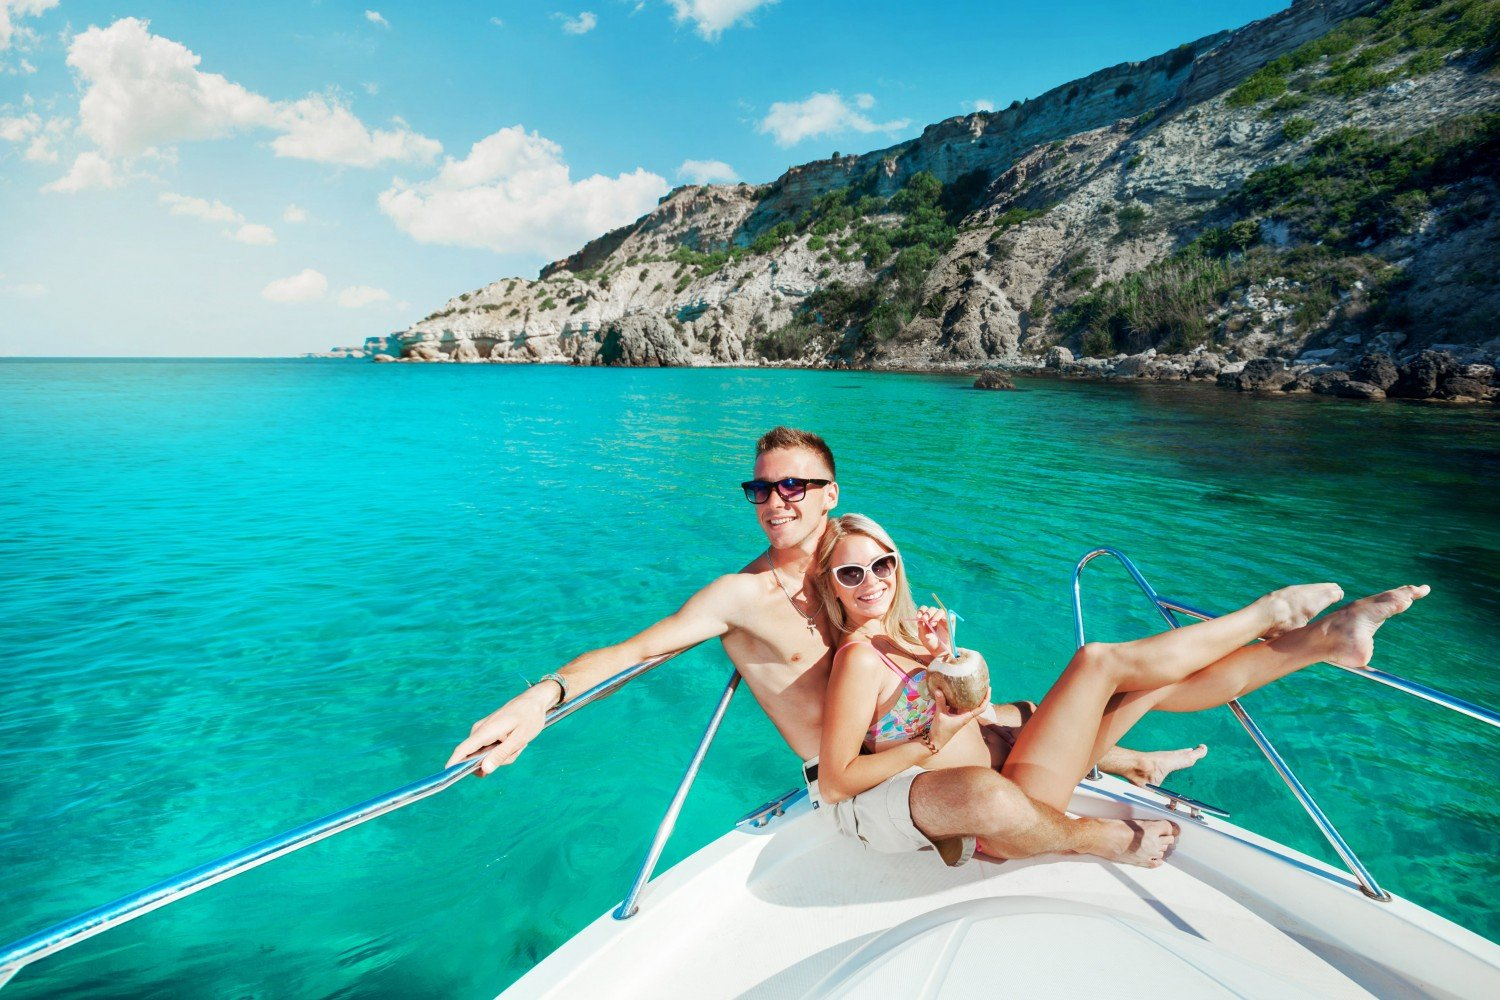 sicily-yacht-charter-sicily-yacht-rental-sicily-boat-charter-sicily-boat-rental-sicily-sailing-charter-romantic-holiday-yacht